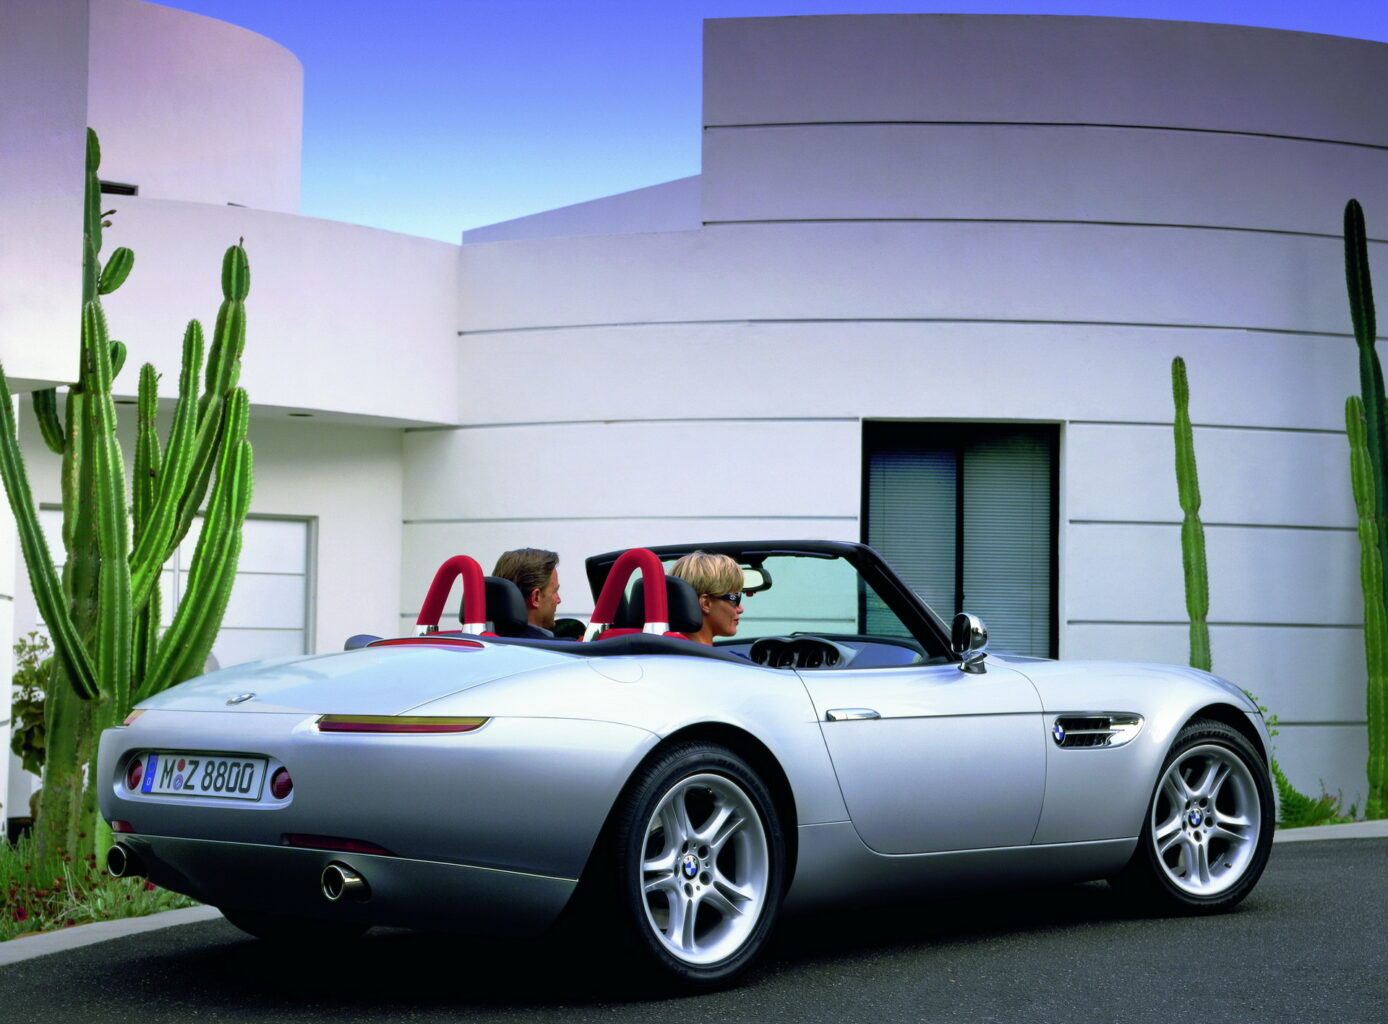 Here's Your Chance to Nab a 23,000-mile 2001 BMW Z8